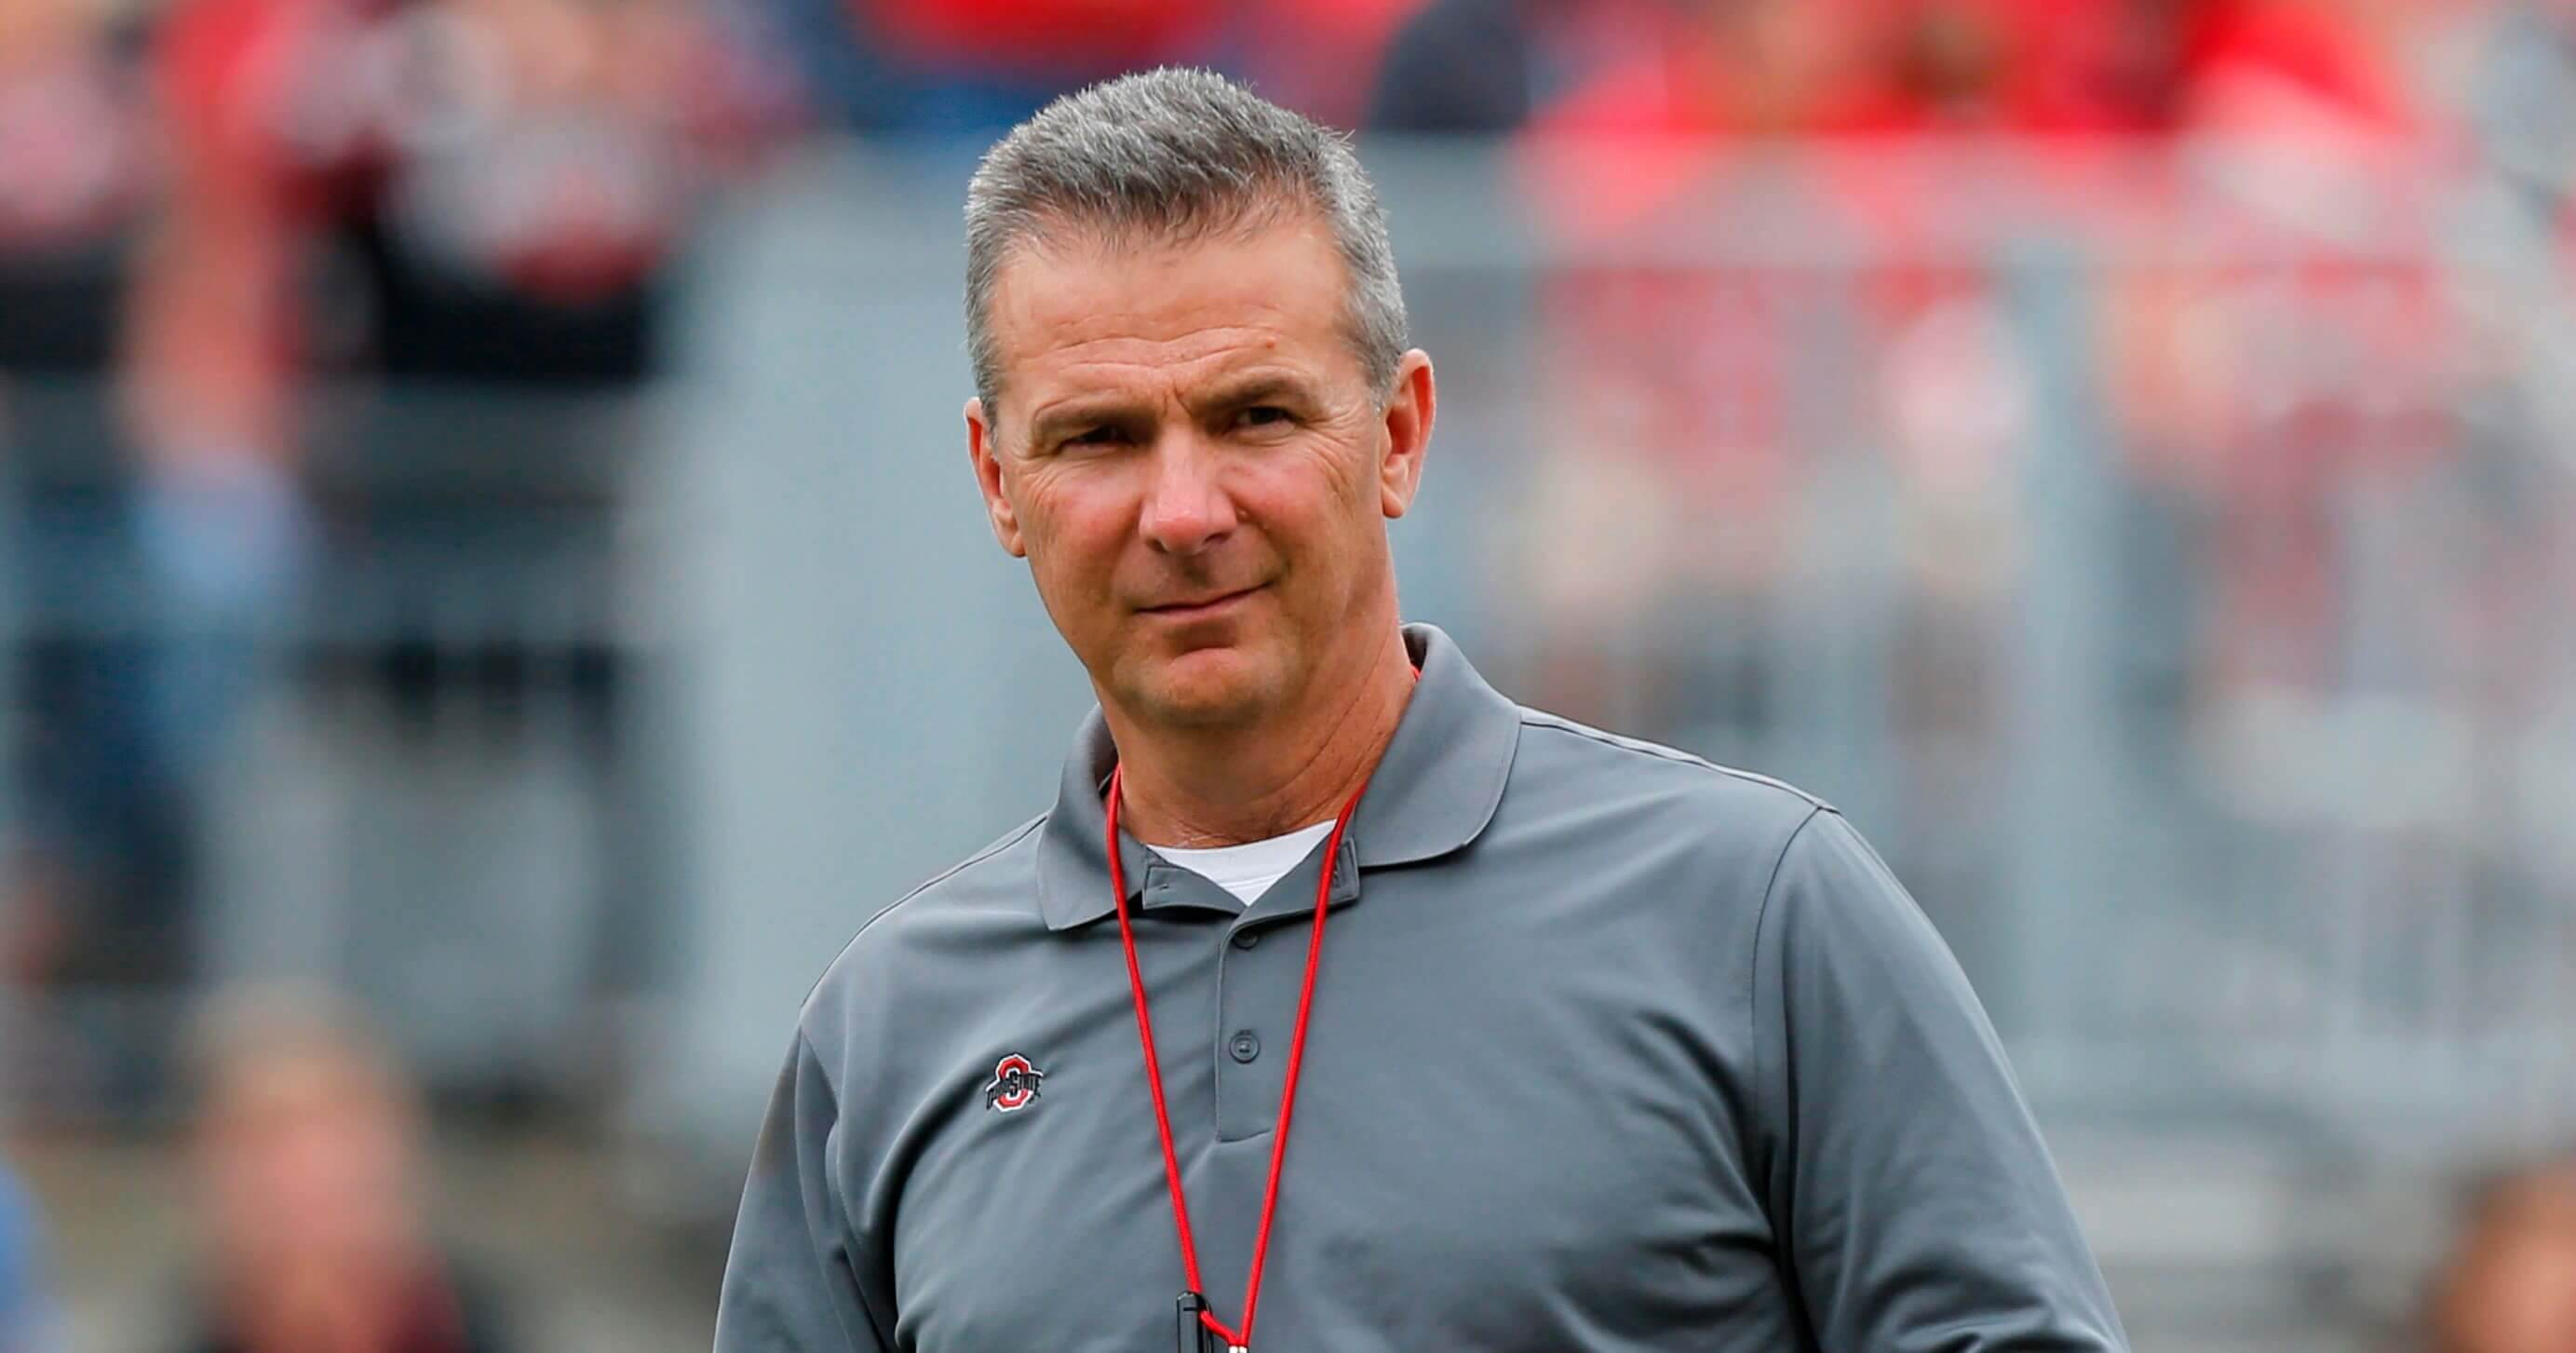 Ohio State coach Urban Meyer watches the team's spring game in Columbus, Ohio